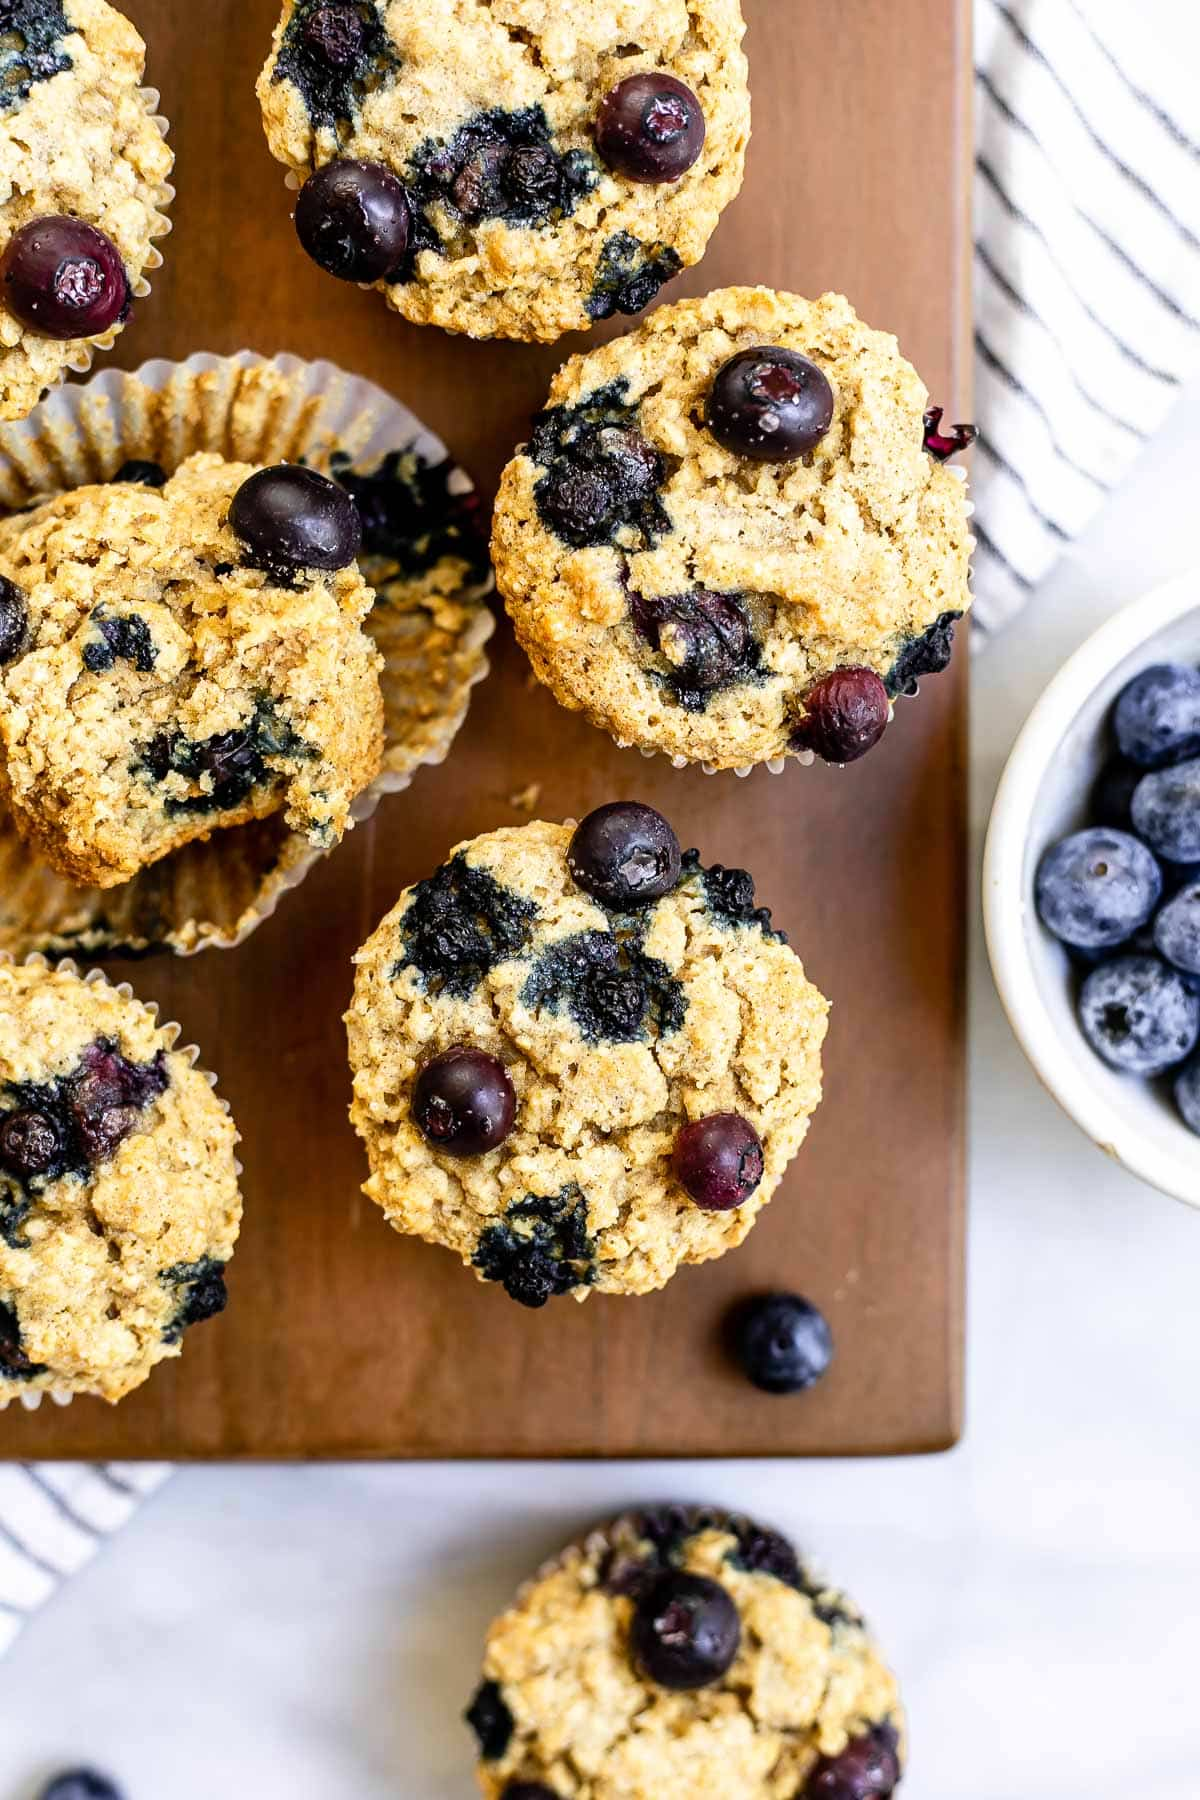 Overhead shot of the oatmeal muffins with blueberries on top.